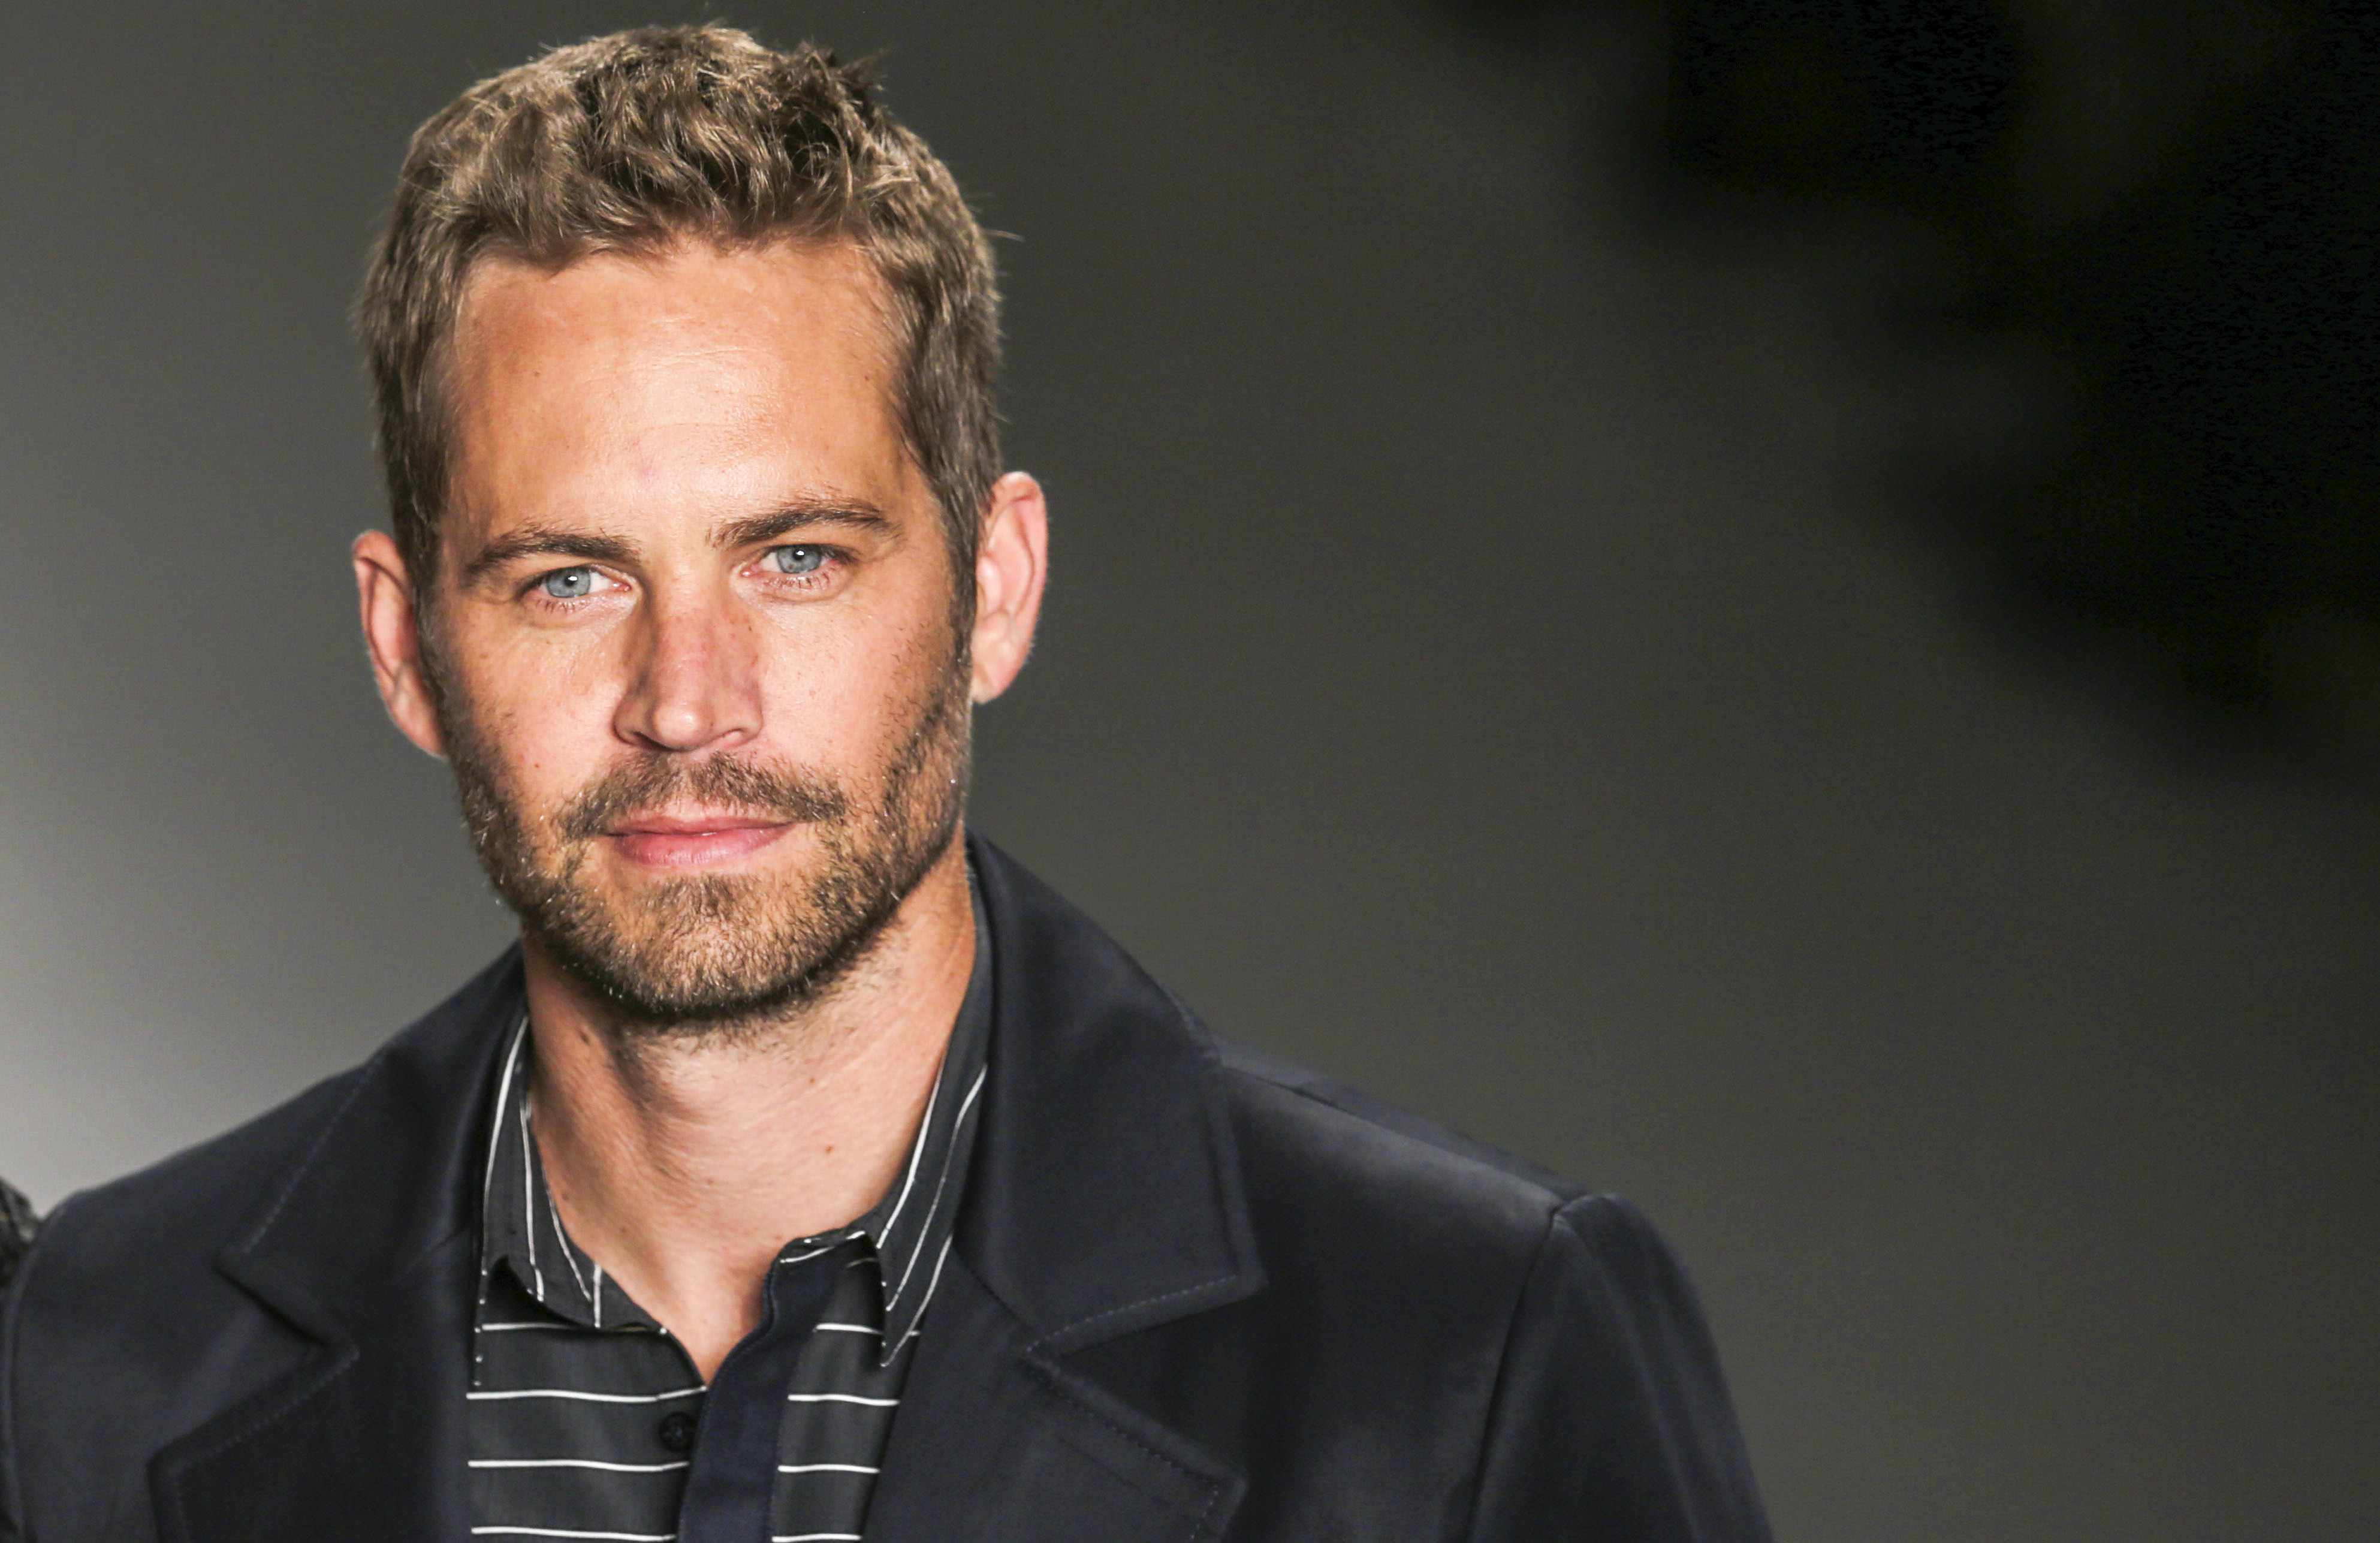 Actor Paul Walker walks the runway at the Samuel Cirnansck show during Sao Paulo Fashion Week Summer 2013/2014 on March 21, 2013 in Sao Paulo, Brazil.